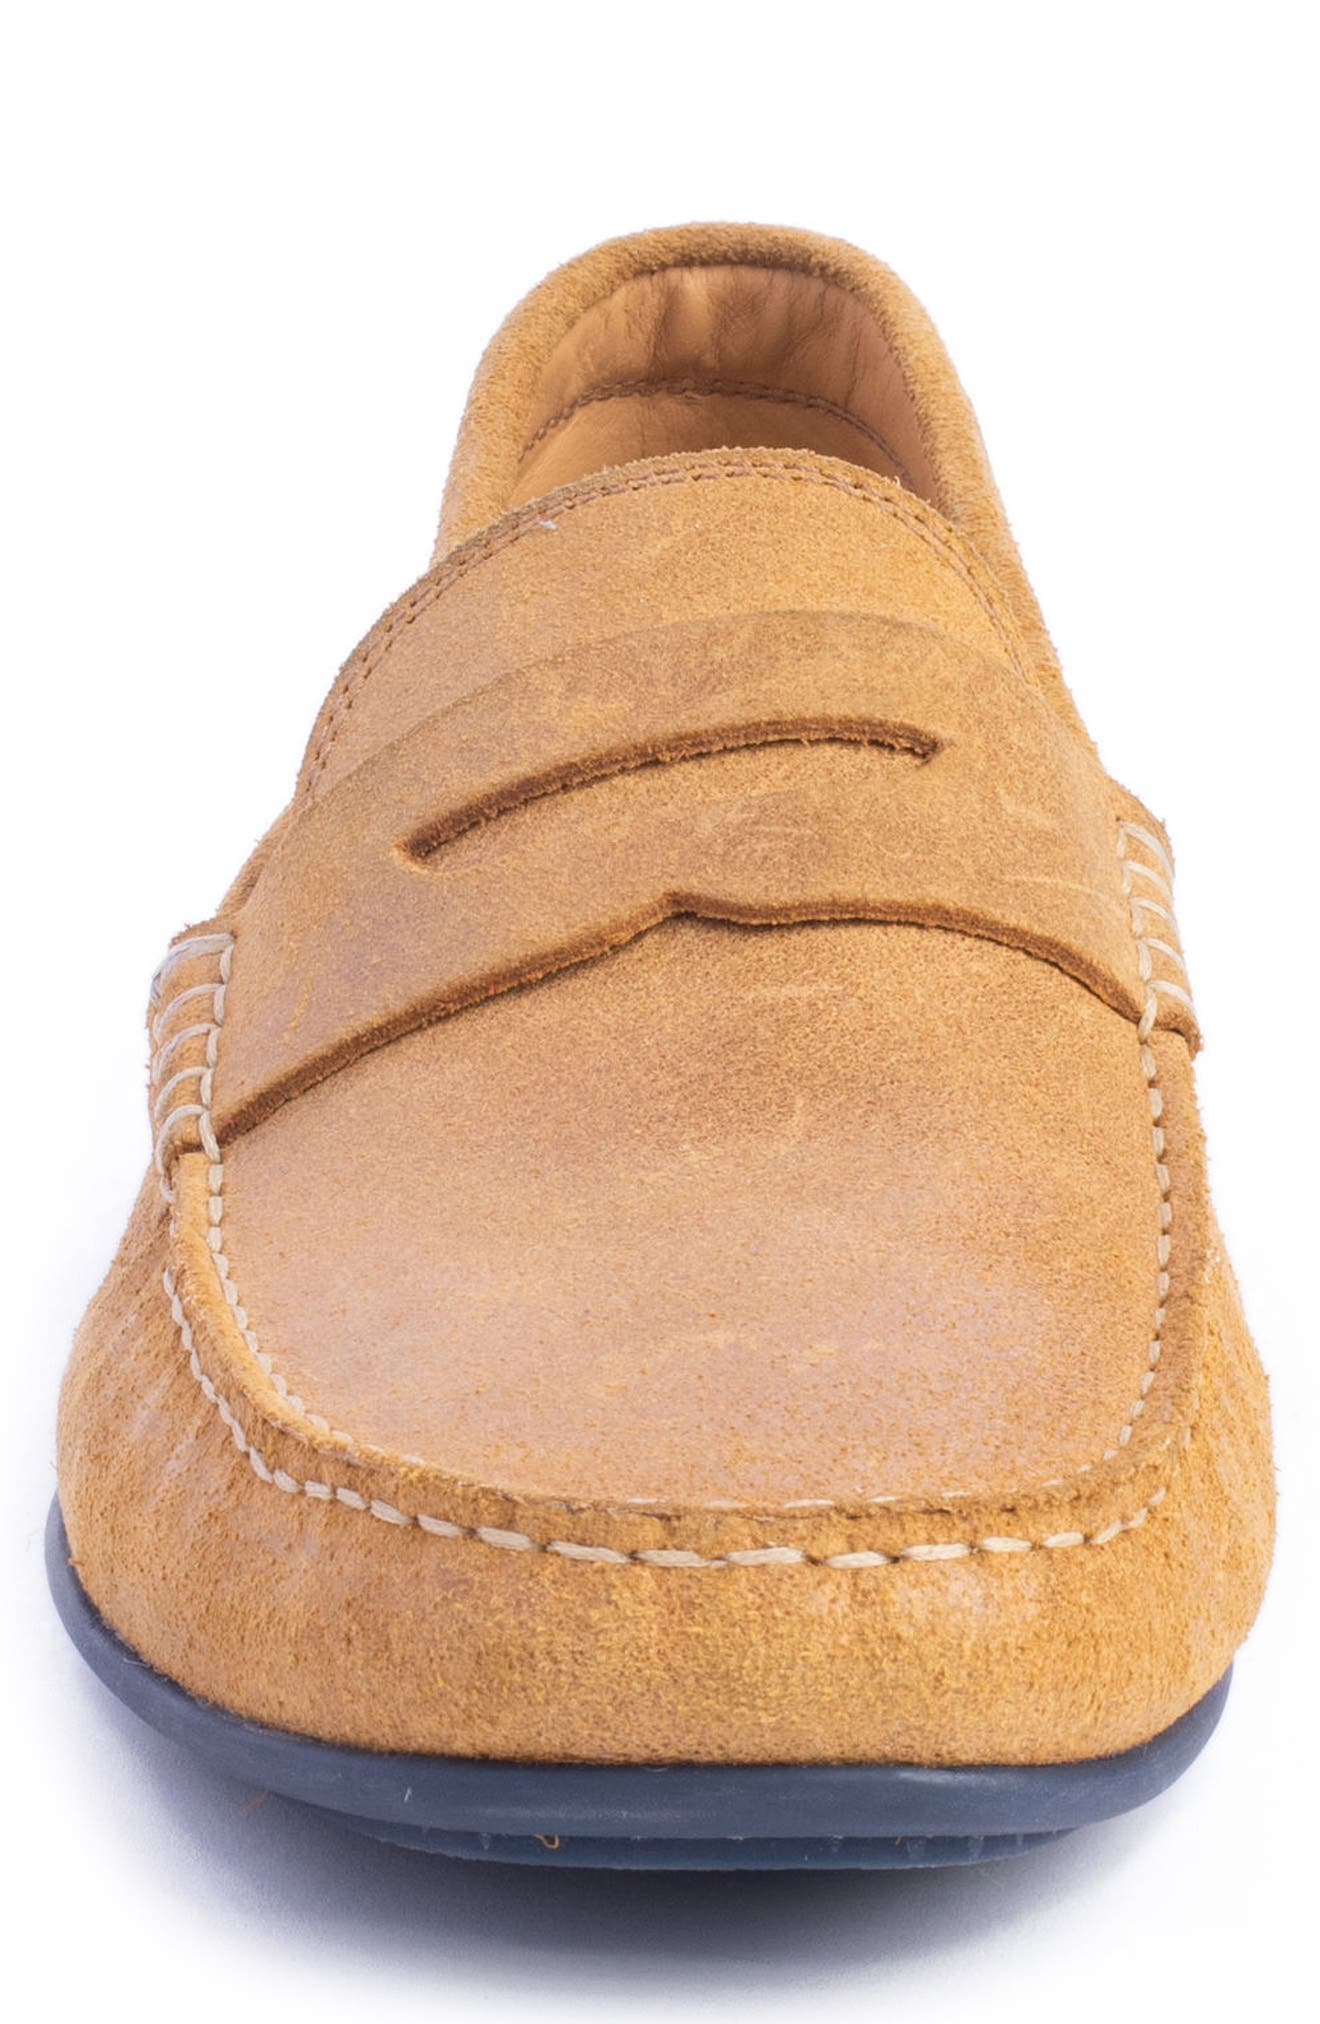 Barretts Penny Loafer,                             Alternate thumbnail 4, color,                             Tan